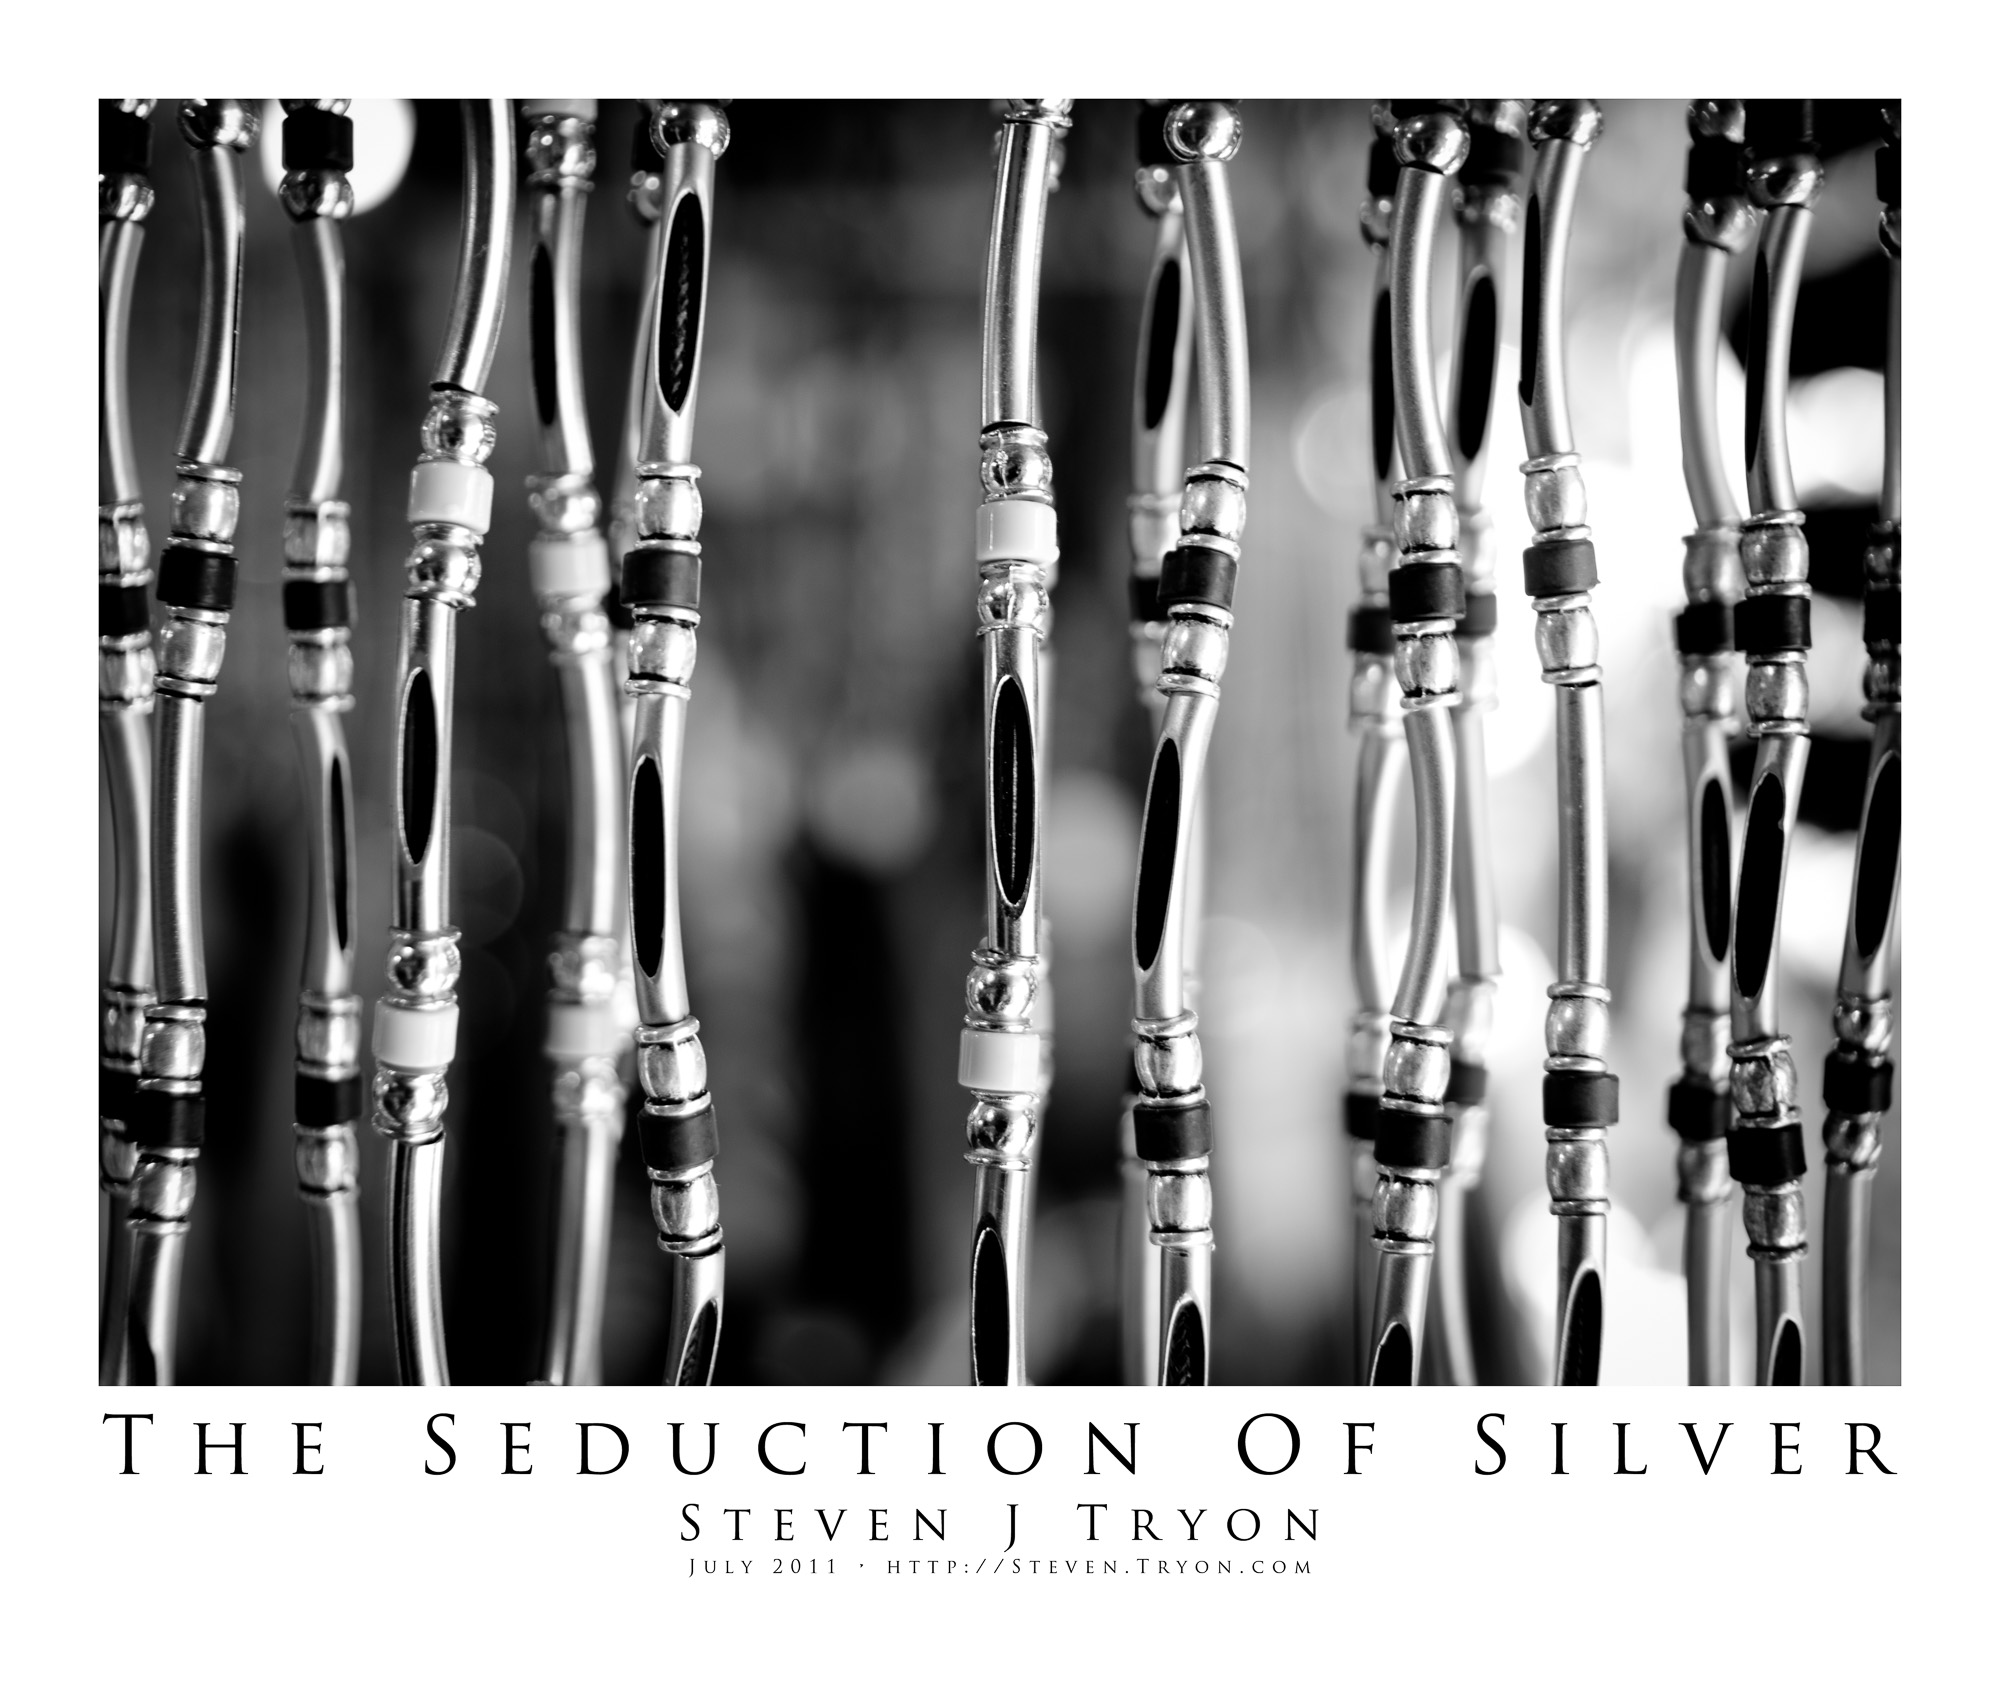 The Seduction Of Silver